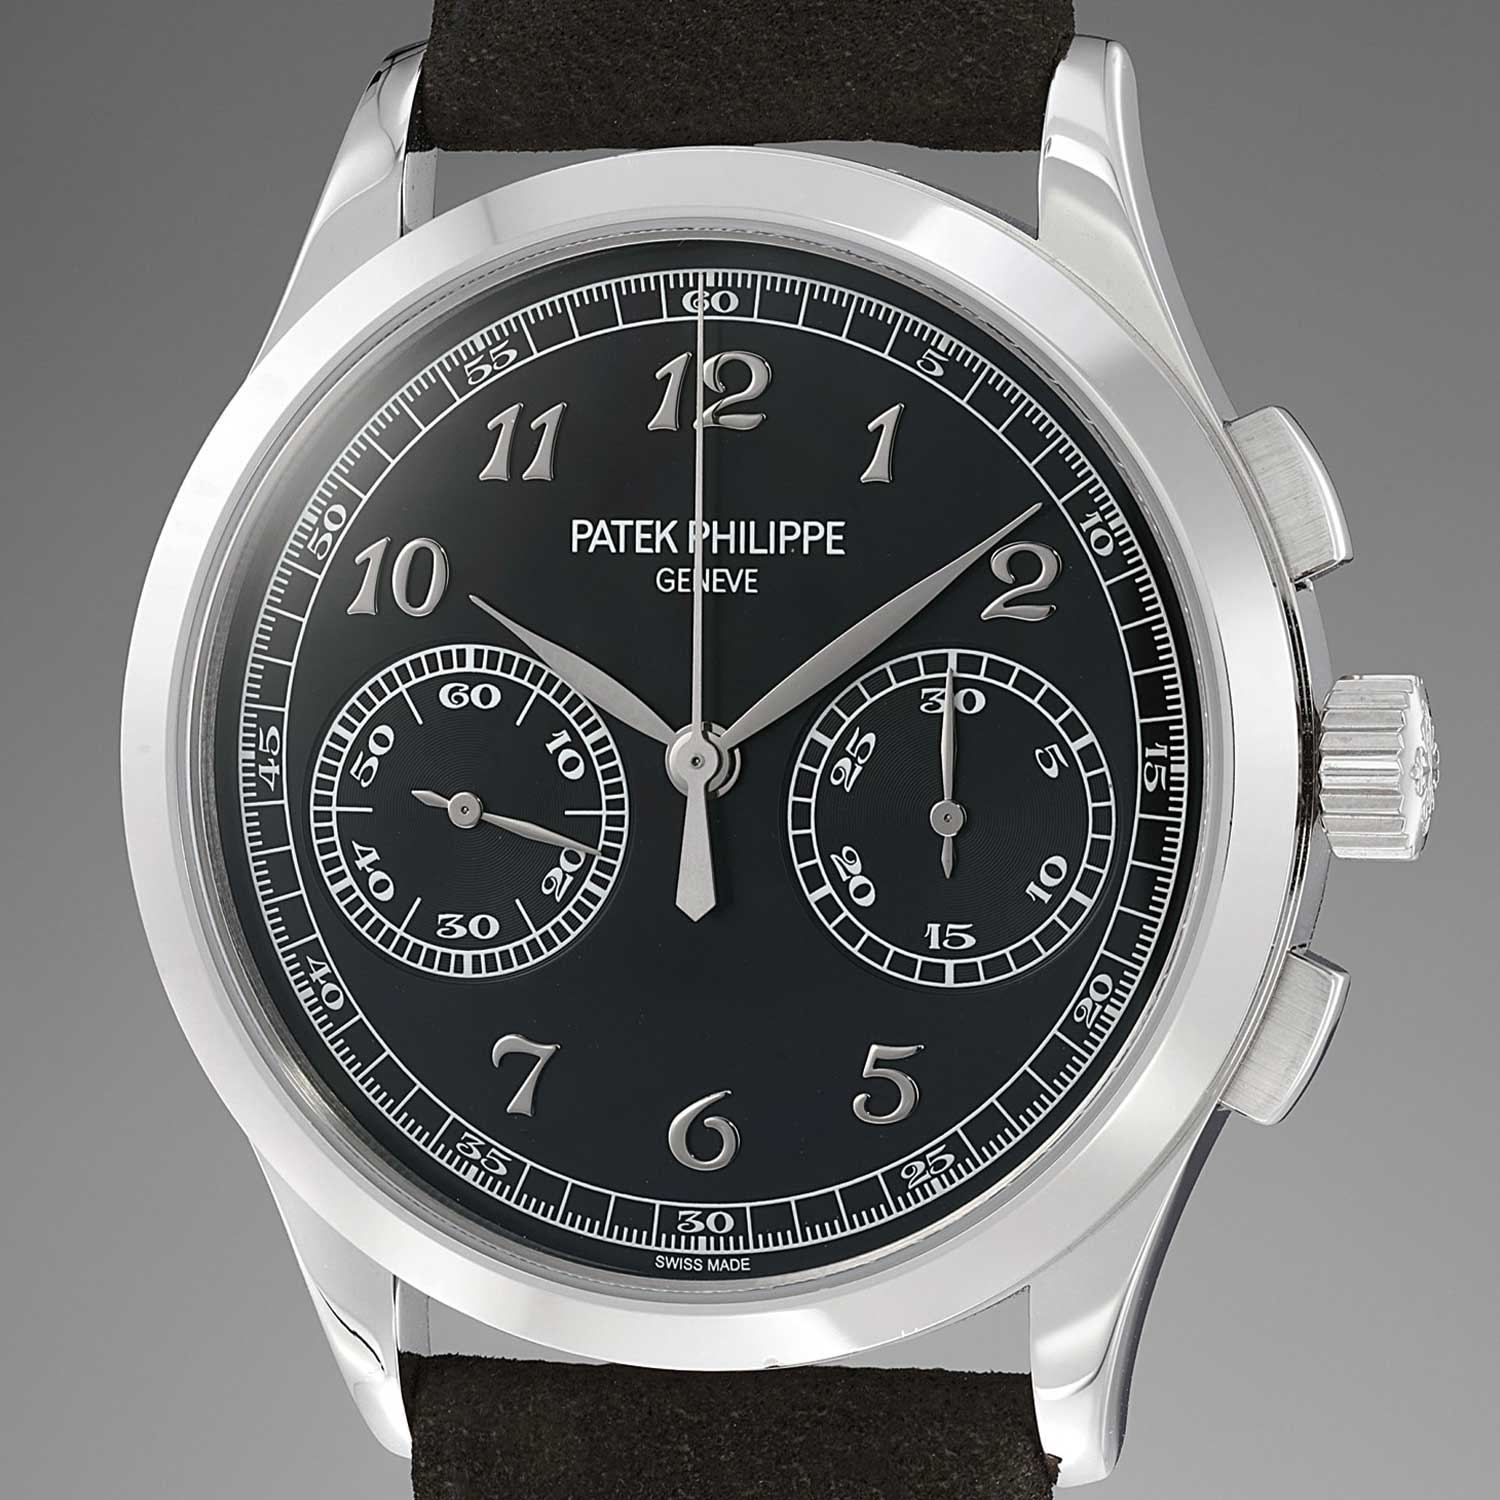 The Ref. 5170G-010 was launched in 2015; this second version of the watch featured a white gold case with applied Breguet hour markers on a black dial, devoid of a specialty chronograph scale (Image: Phillips.com)